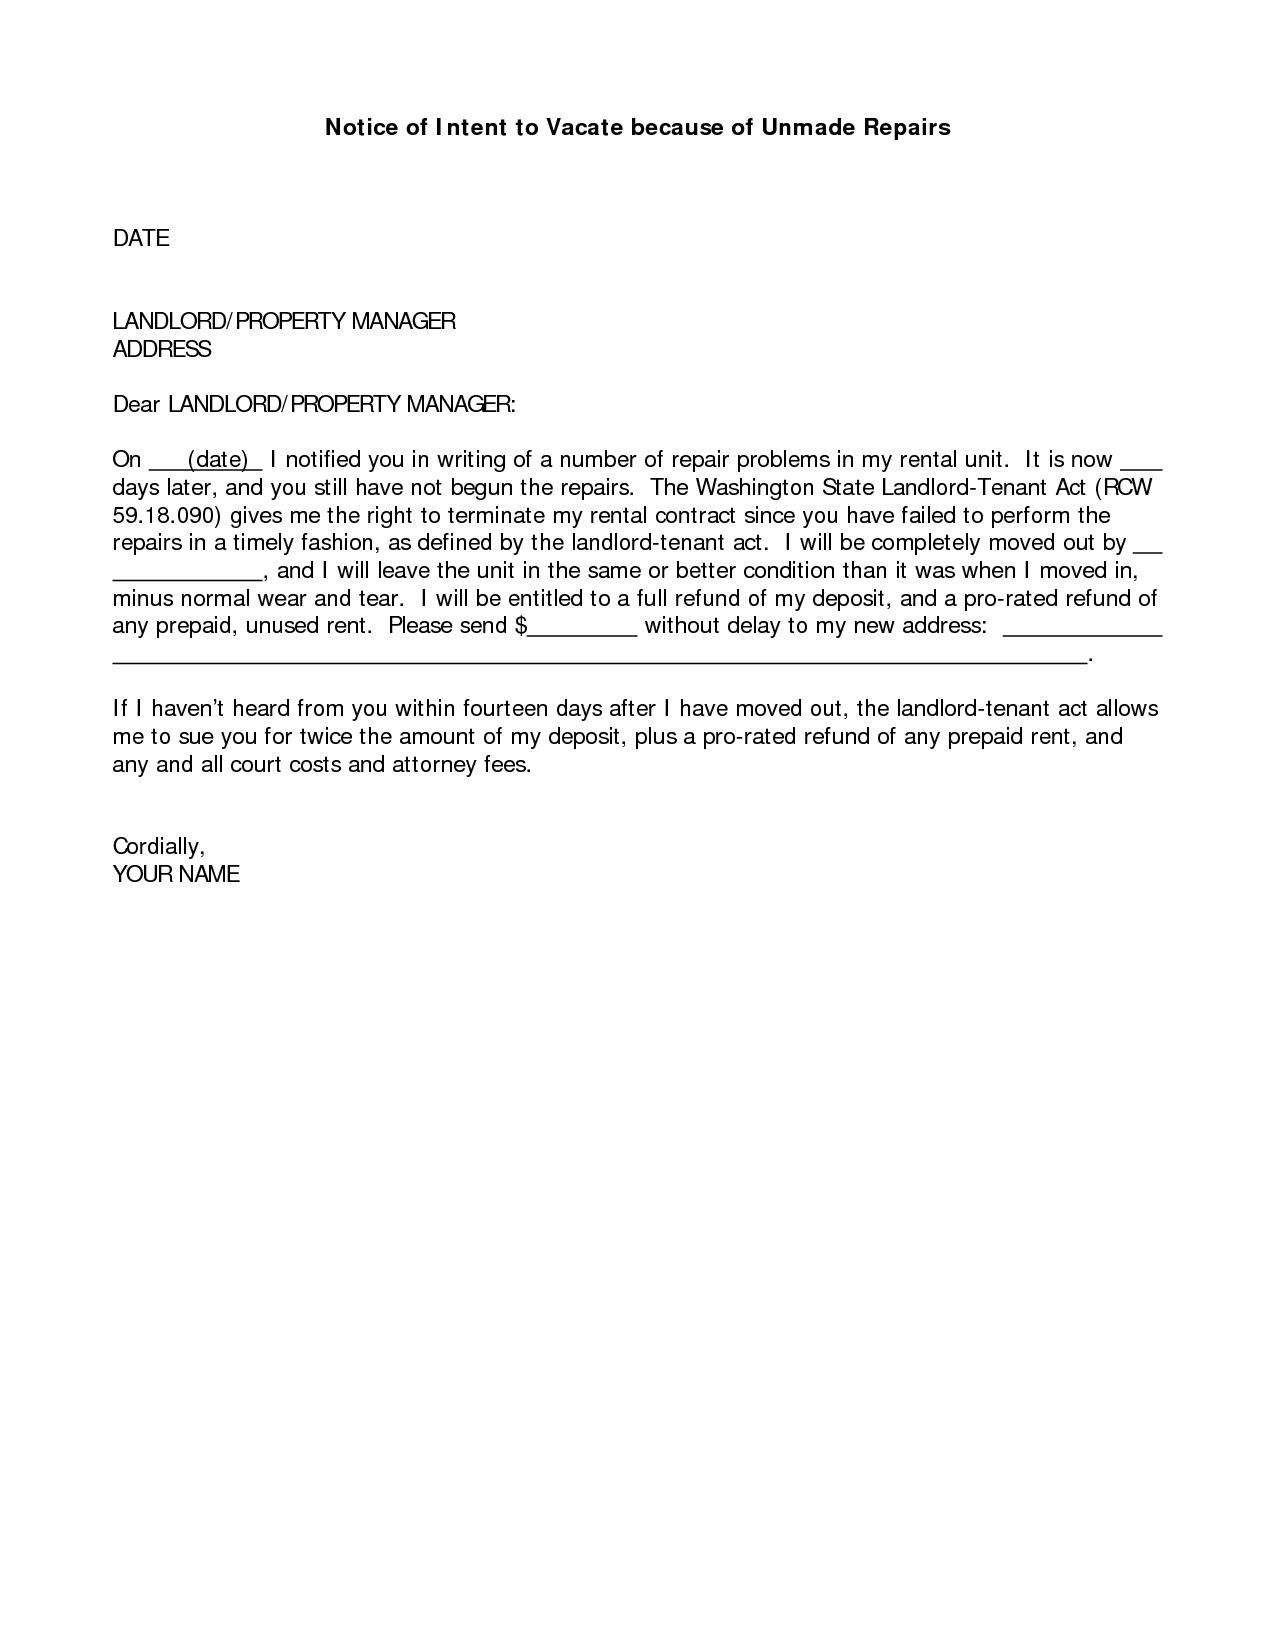 Notice Of Intent to Vacate Letter Template - Sample Letter to Landlord with Notice Vacate Smart Letters Intent